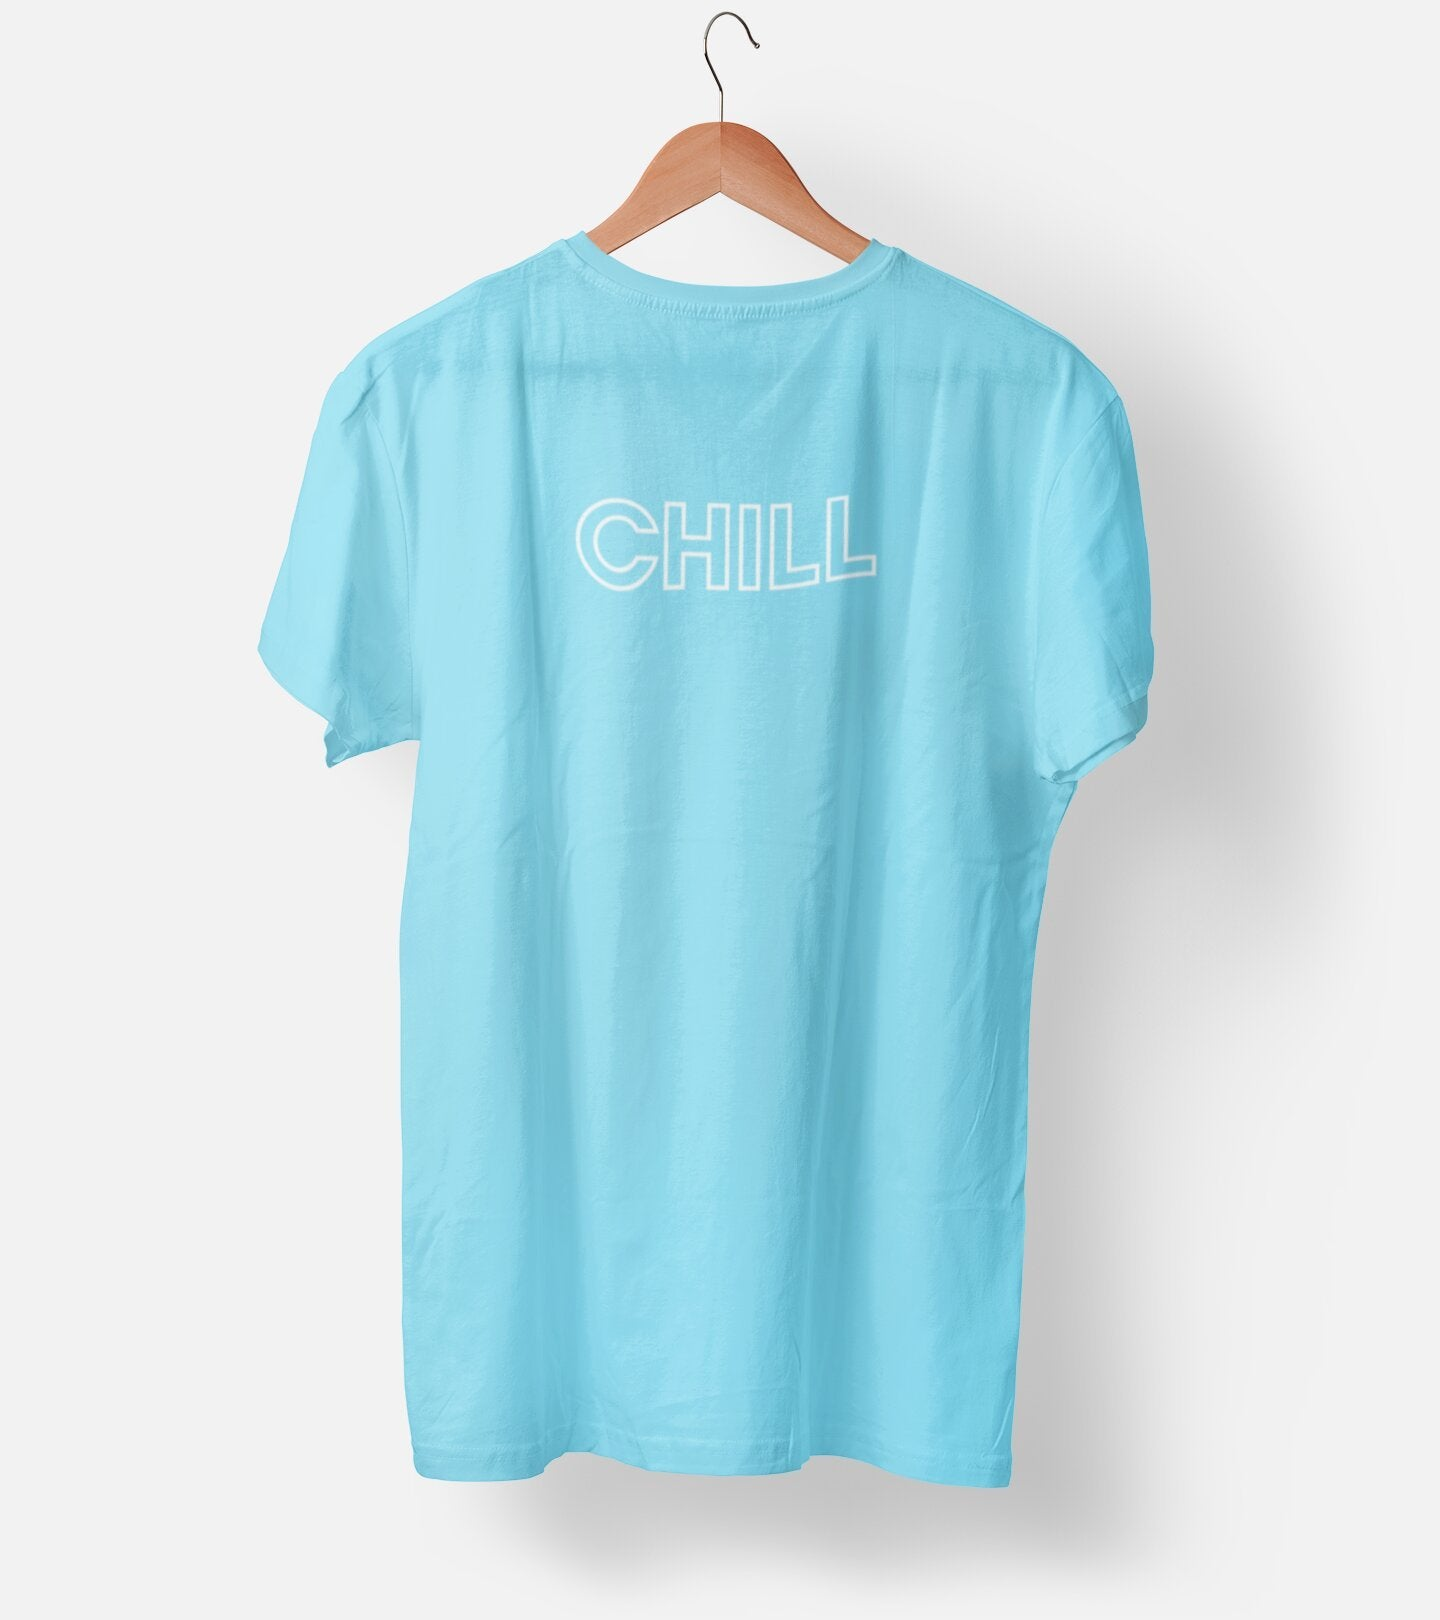 Chill Cool Blue Men's T-Shirt - Dekh.com